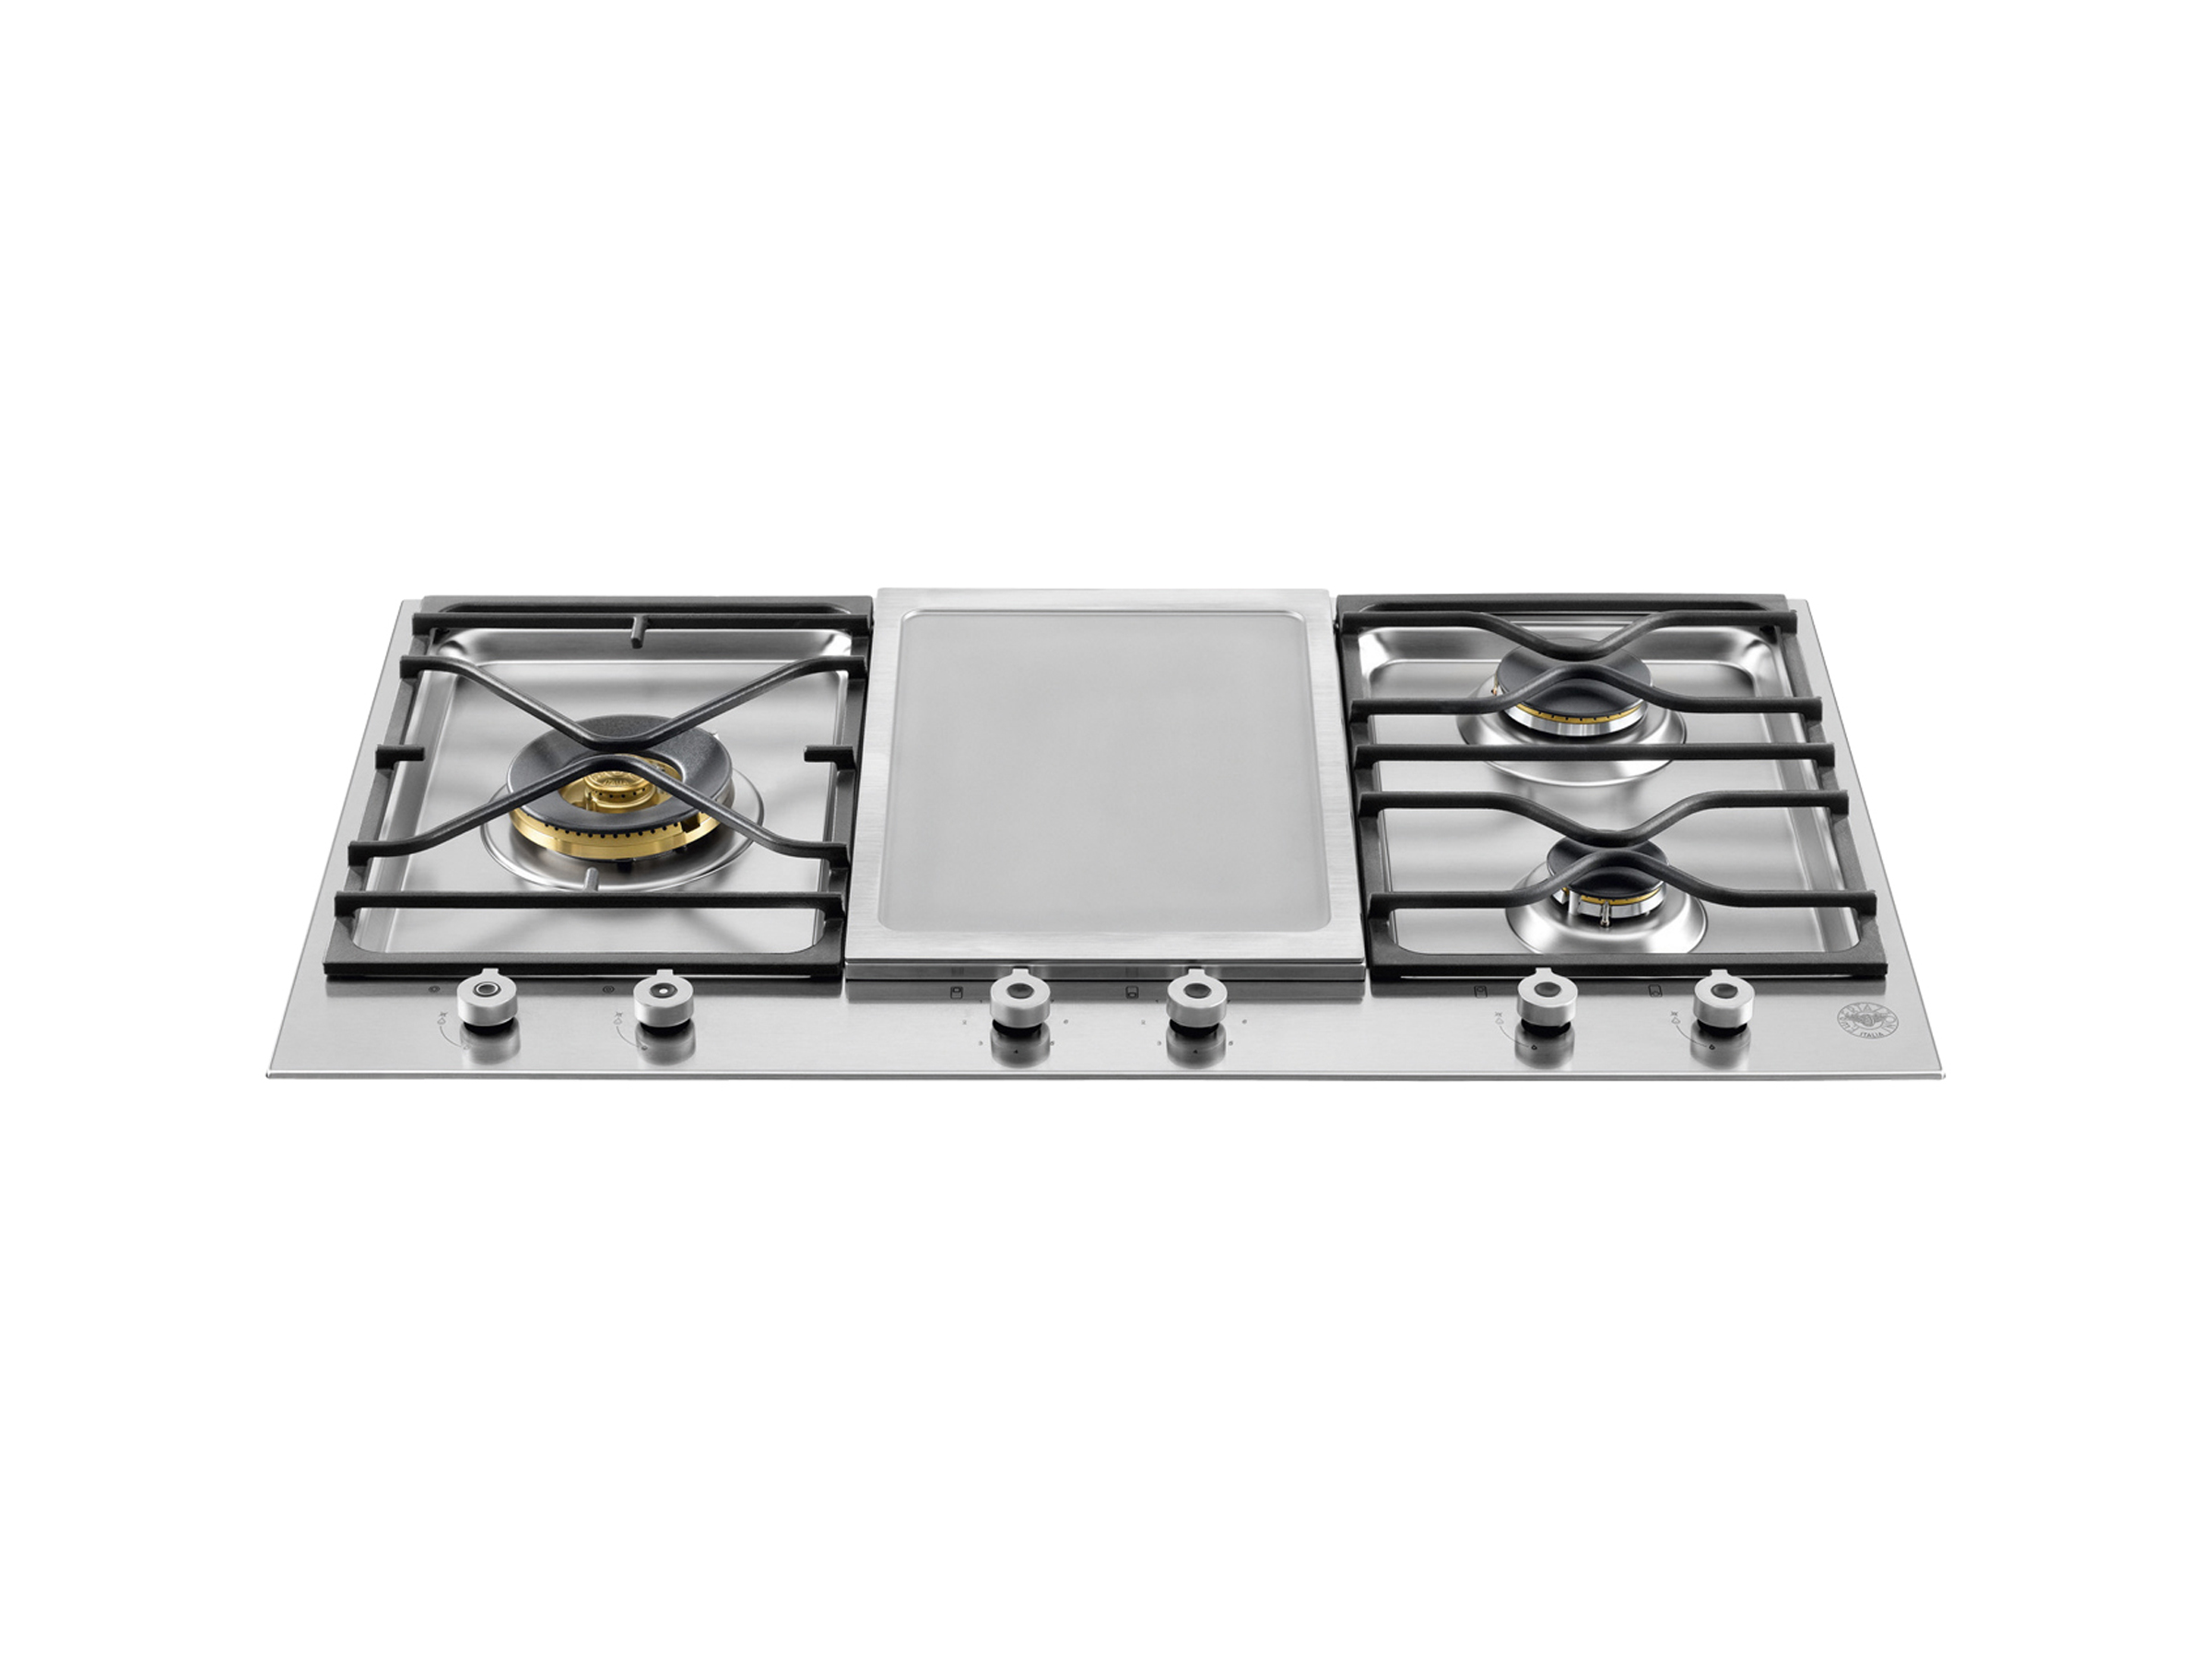 36 Segmented Cooktop 3 Burner And Griddle | Bertazzoni   Stainless